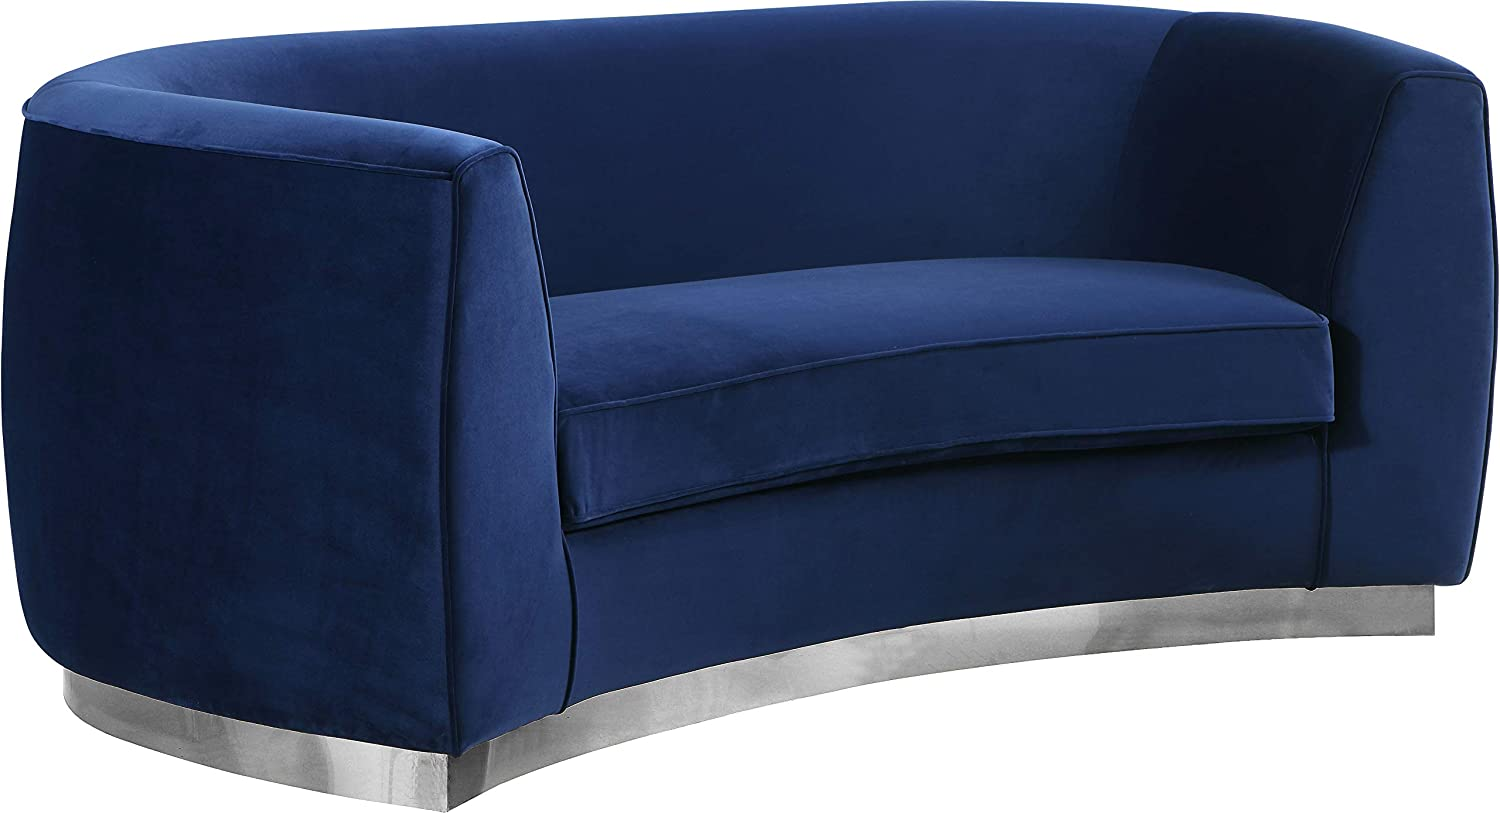 Meridian Furniture Julian Collection Modern   Contemporary Velvet Upholstered Loveseat with Stainless Steel Base in Polished Chrome Finish, Navy, 70